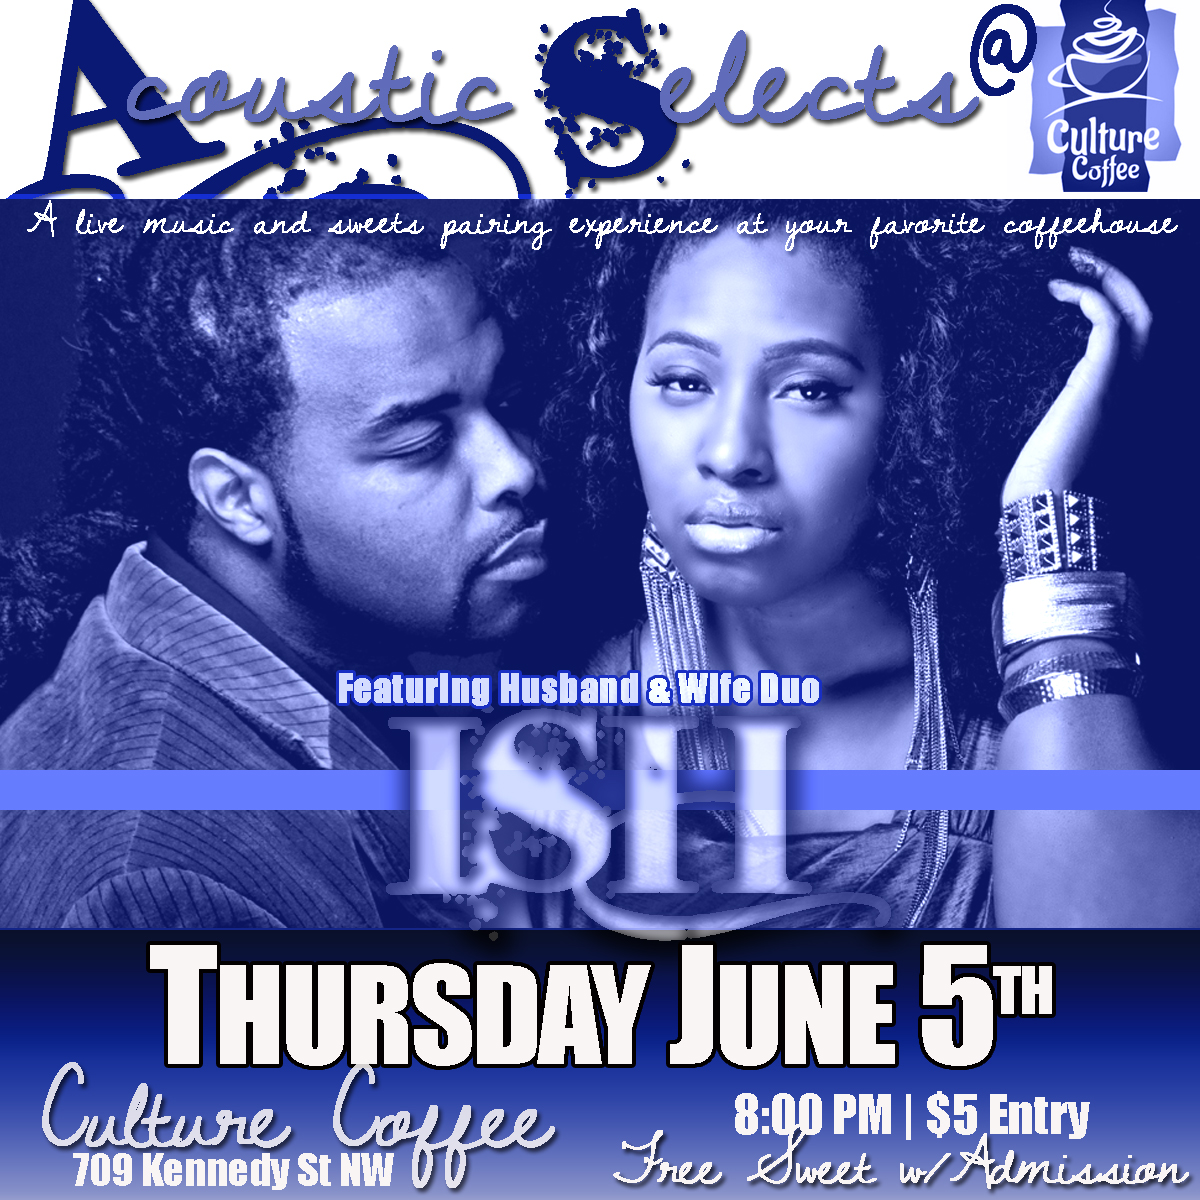 Acoustic Selects @ Culture Coffee wsg ISH